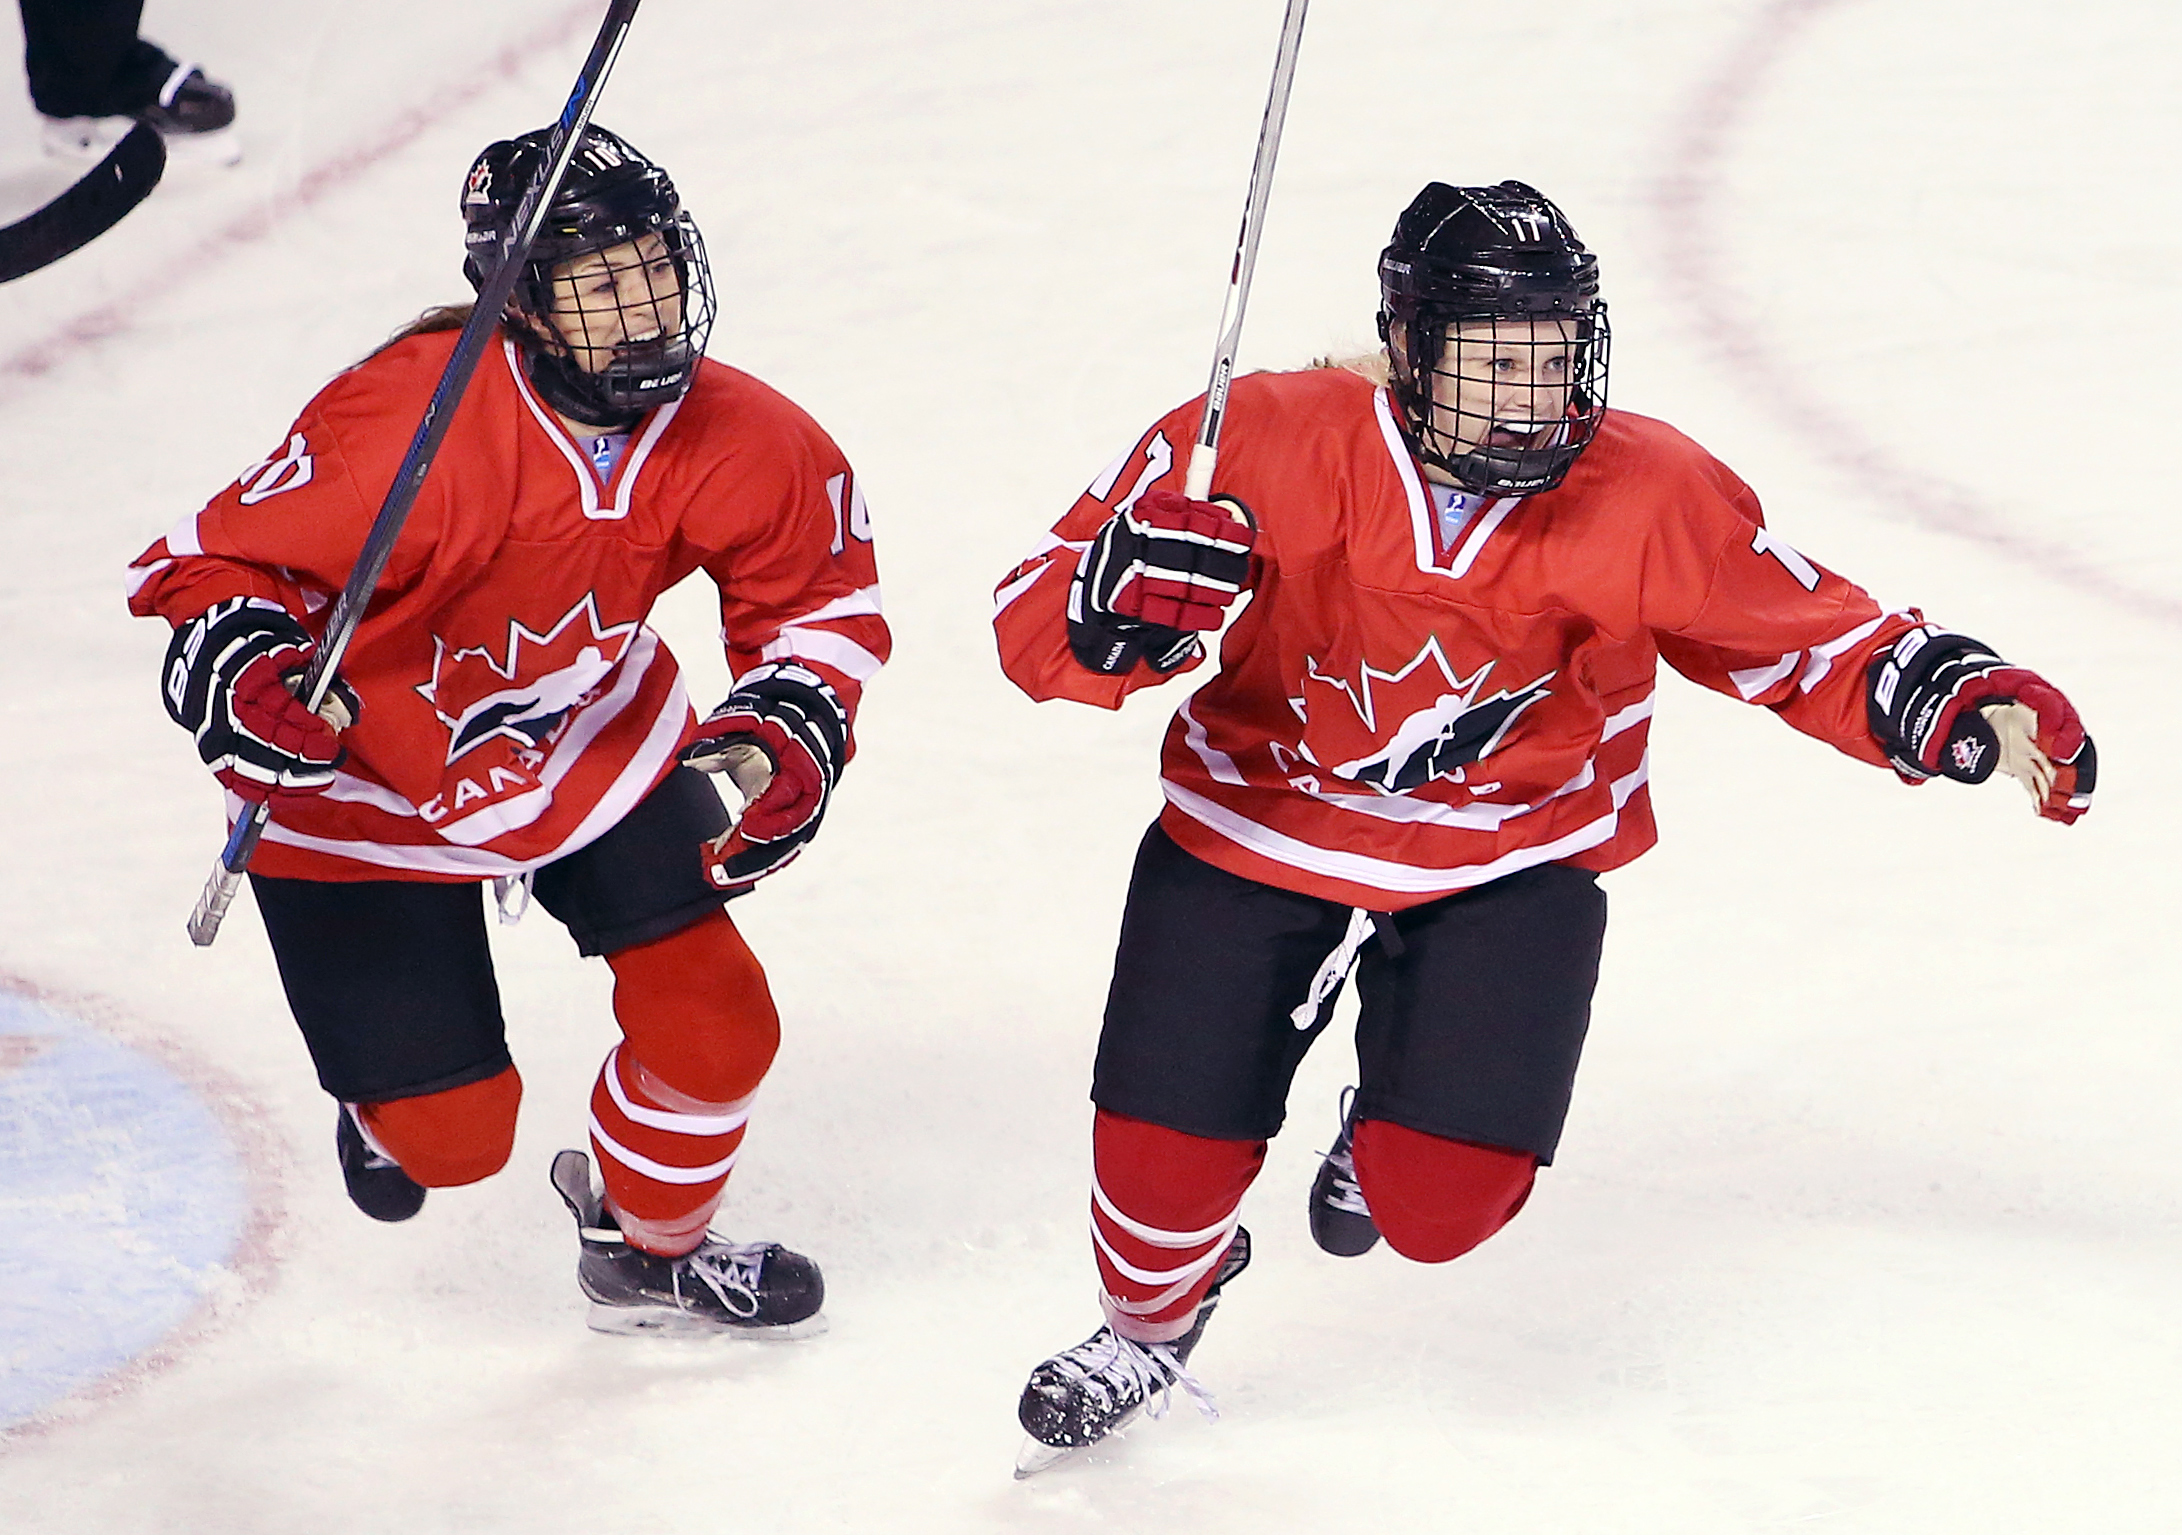 Kristin O'Neill #10 and Emma Maltais #17 of Team Canada celebrate a goal by teammate Ashton Bell #26 in a semifinal game against Team Russia during the 2016 IIHF U18 Women's World Championships